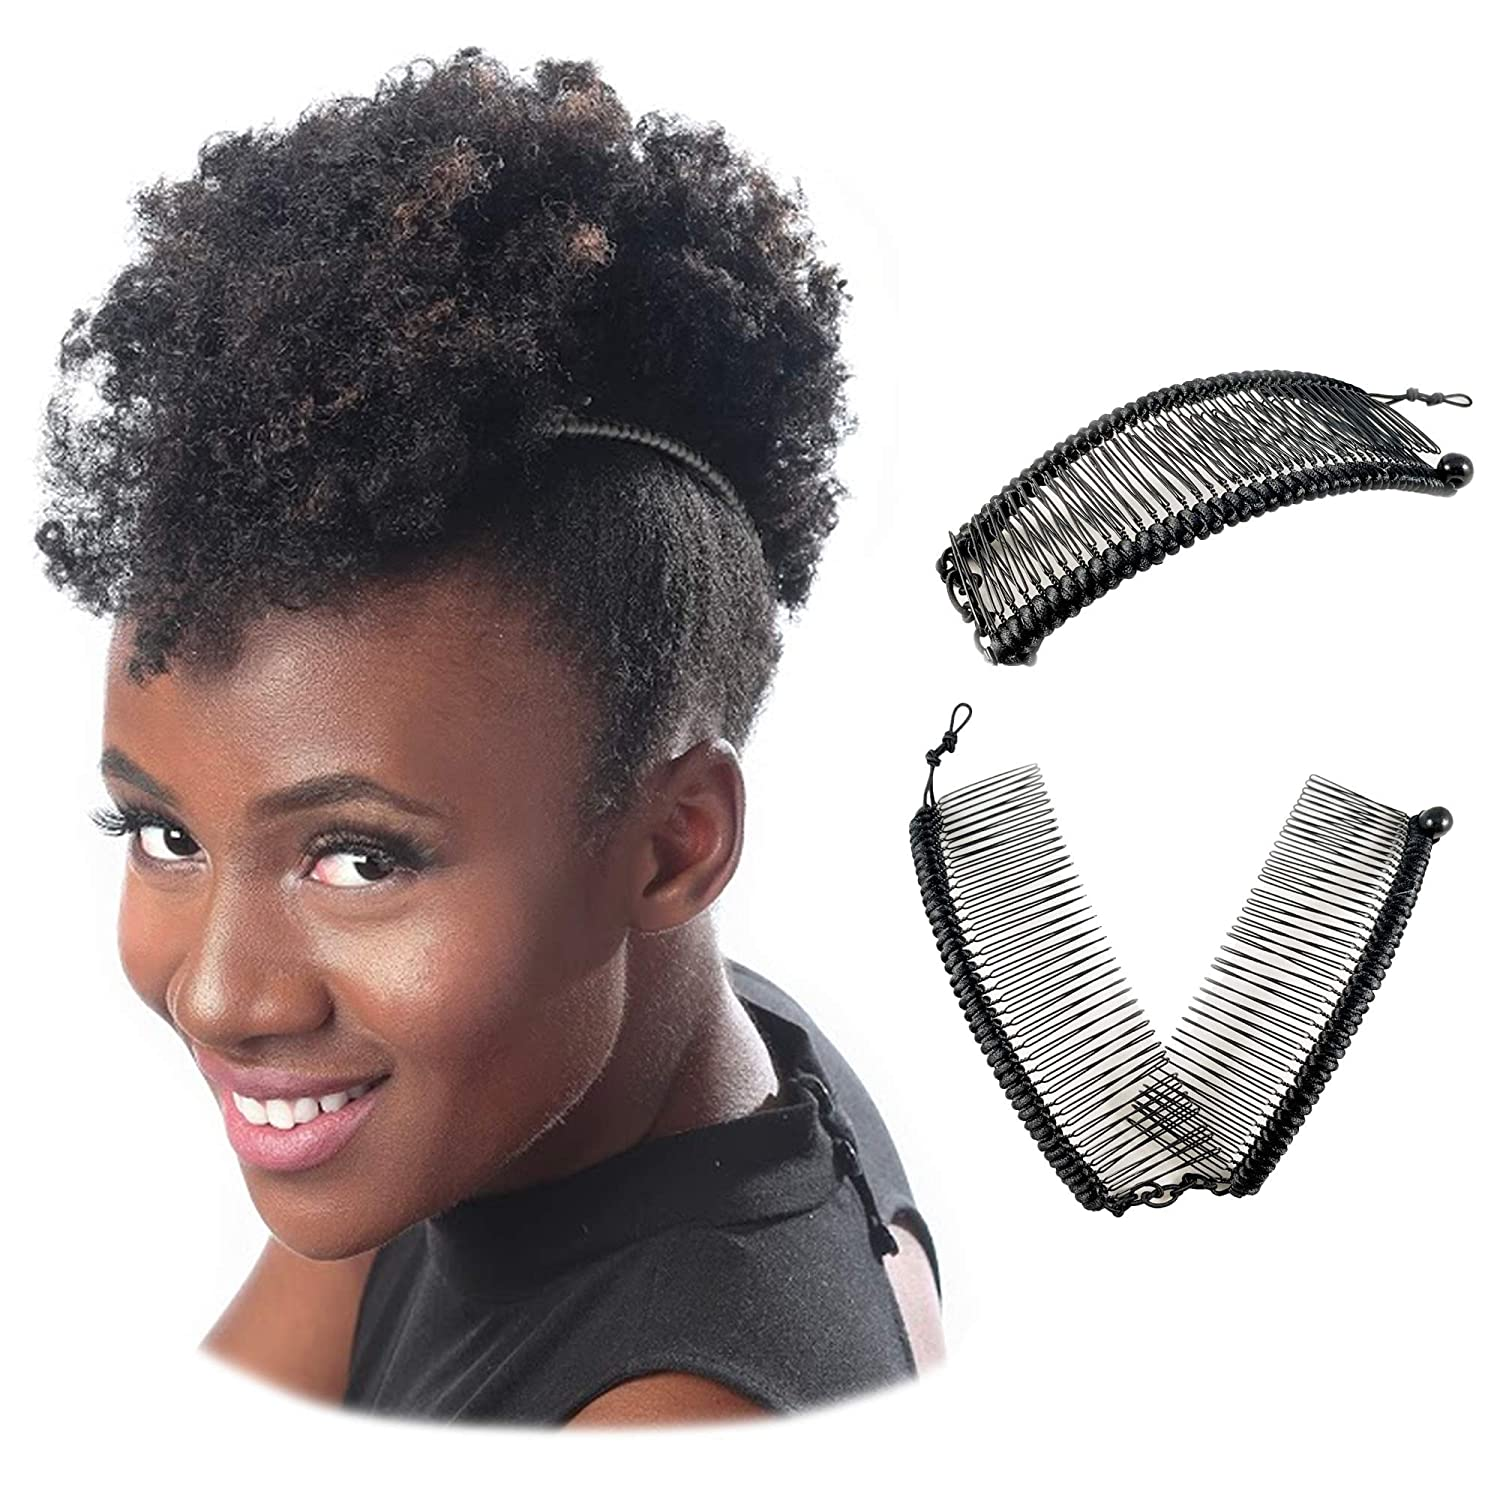 Banana Clip for Thick Heavy Natural Kinky & Curly Hair Stretch & Adjust for  Safe Comfy Updos Large Black Satin w/Ball Closure